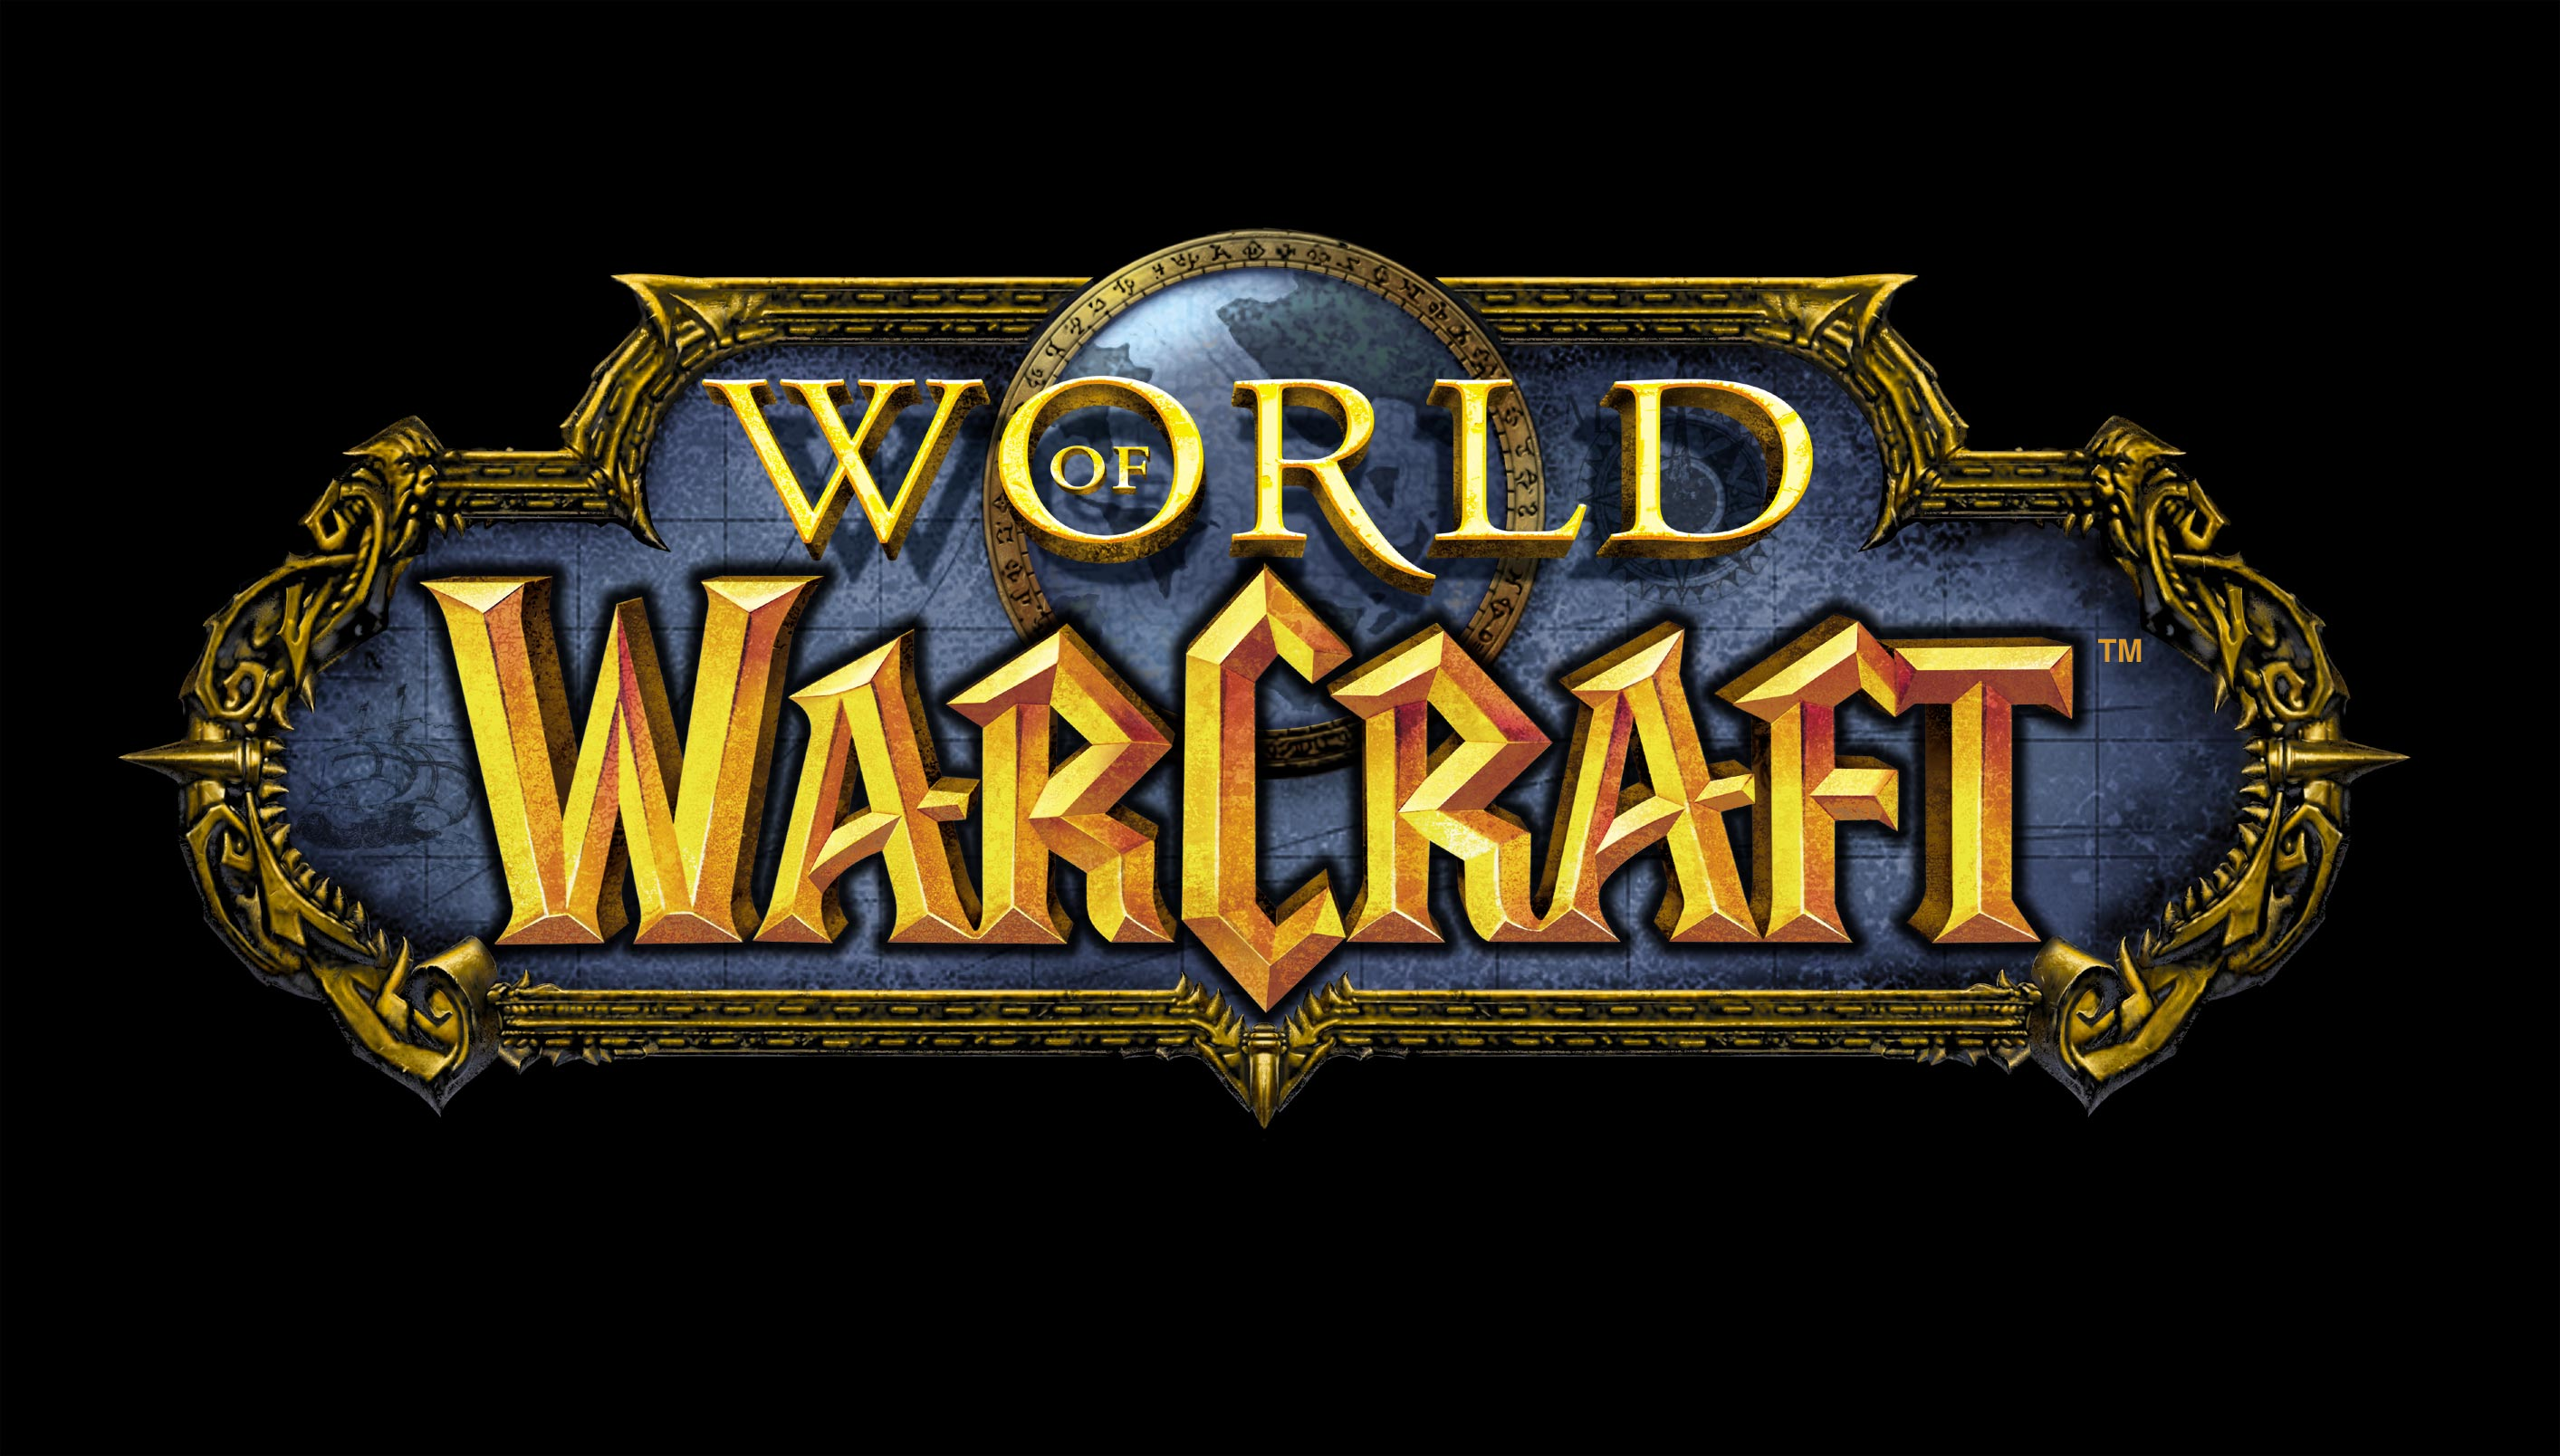 bandofgeeks.fr/wp-content/uploads/2015/08/World-of-Warcraft-Logo.jpg